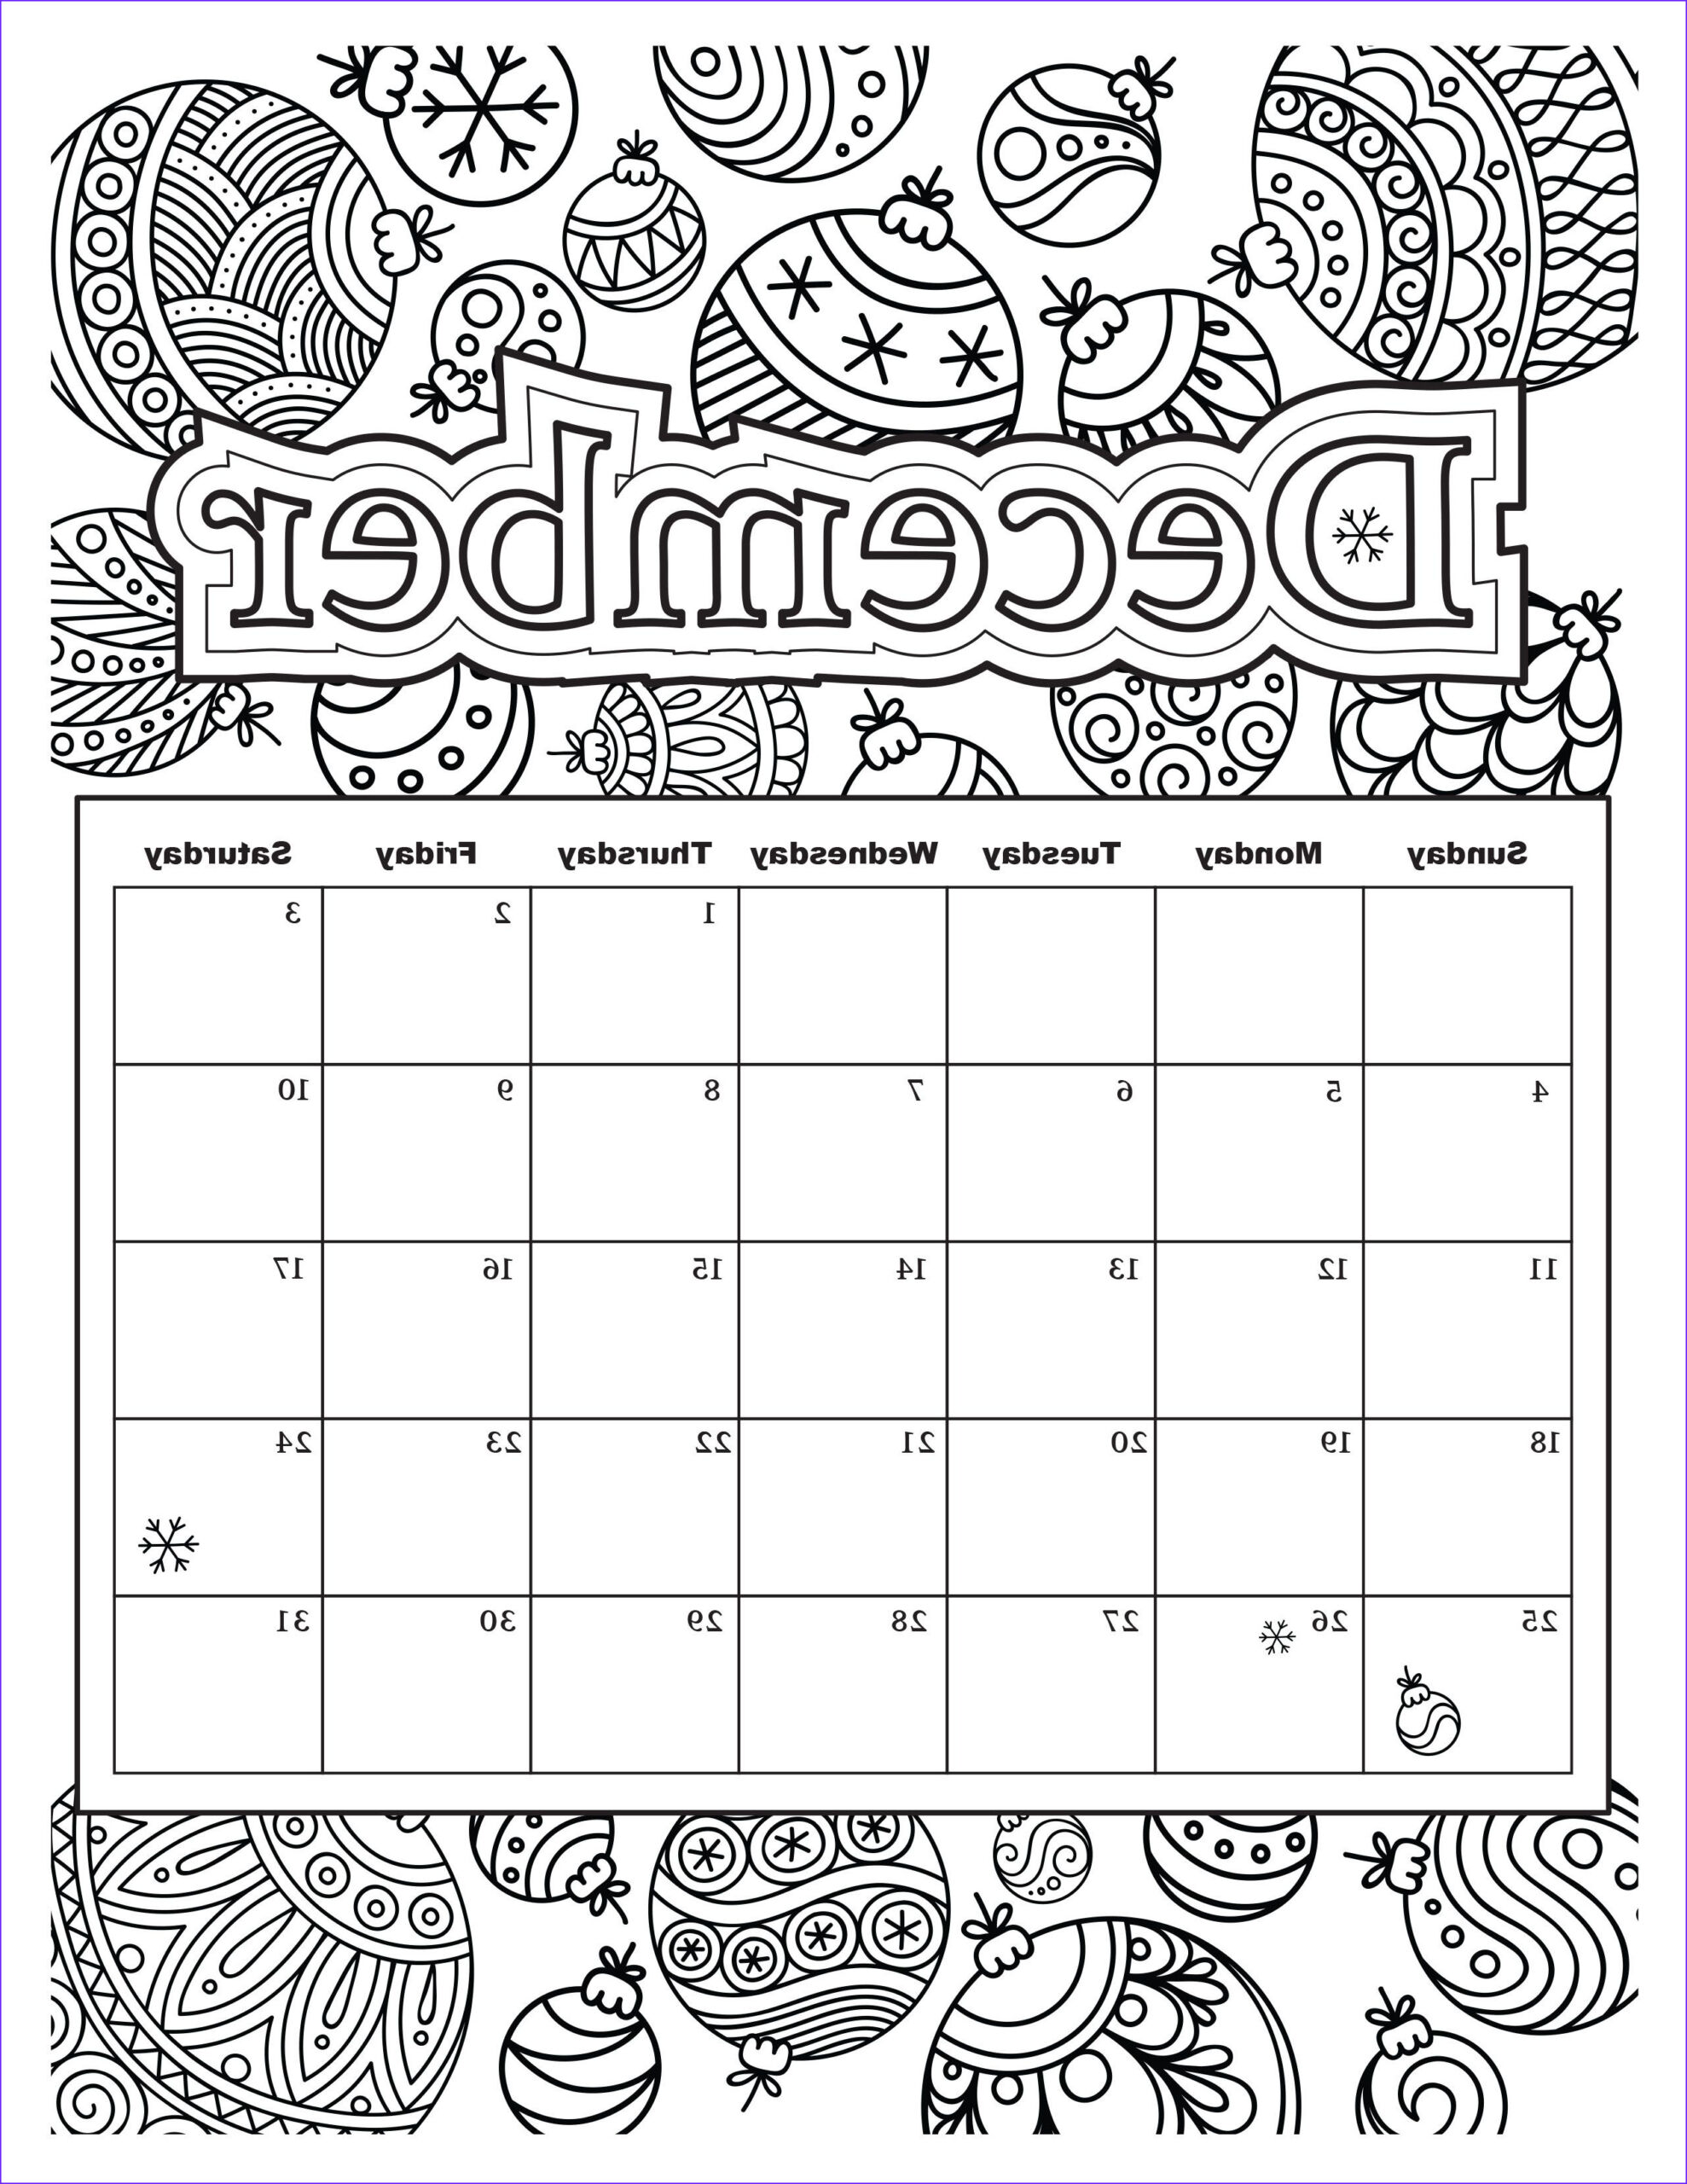 Coloring Calendar 2018 Luxury Photos Free Download Coloring Pages From Popular Adult Coloring